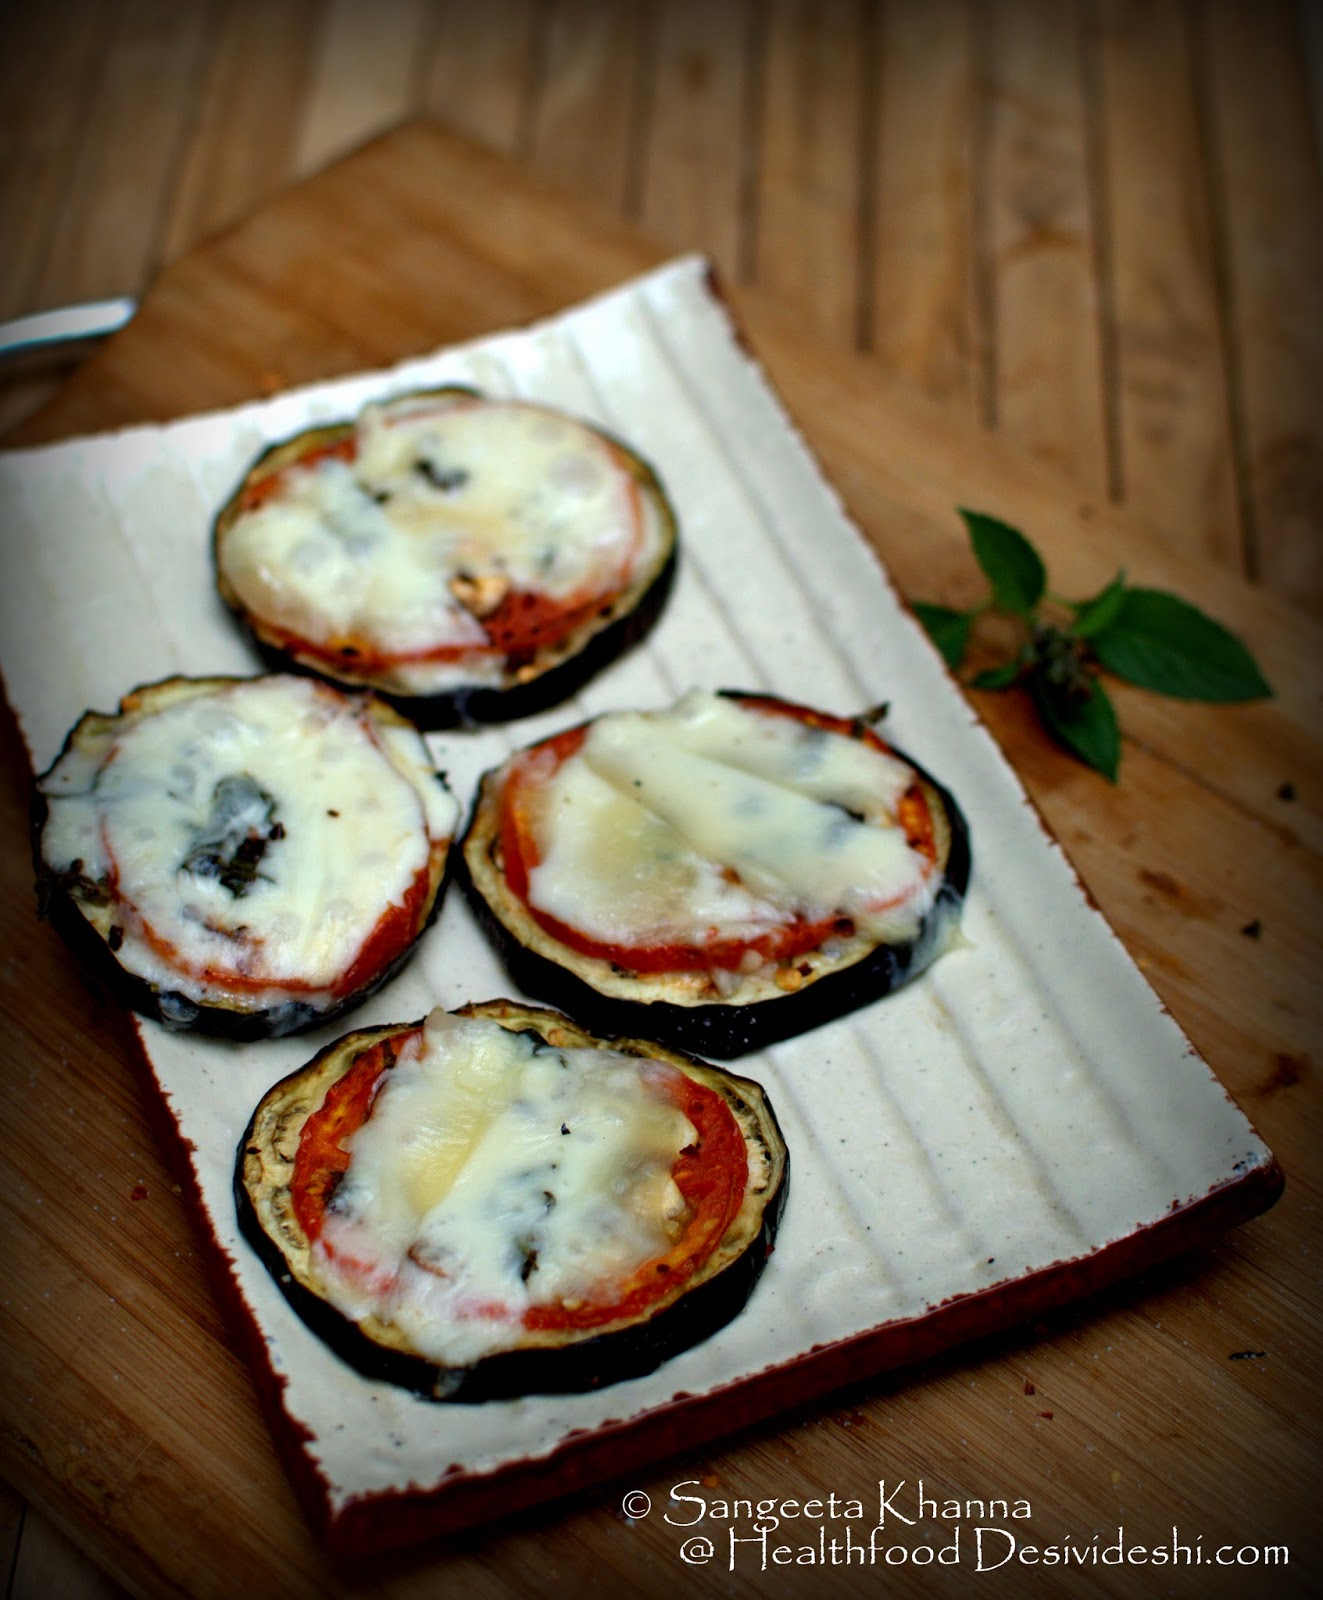 quick aubergine pizza : a grain free pizza that we love